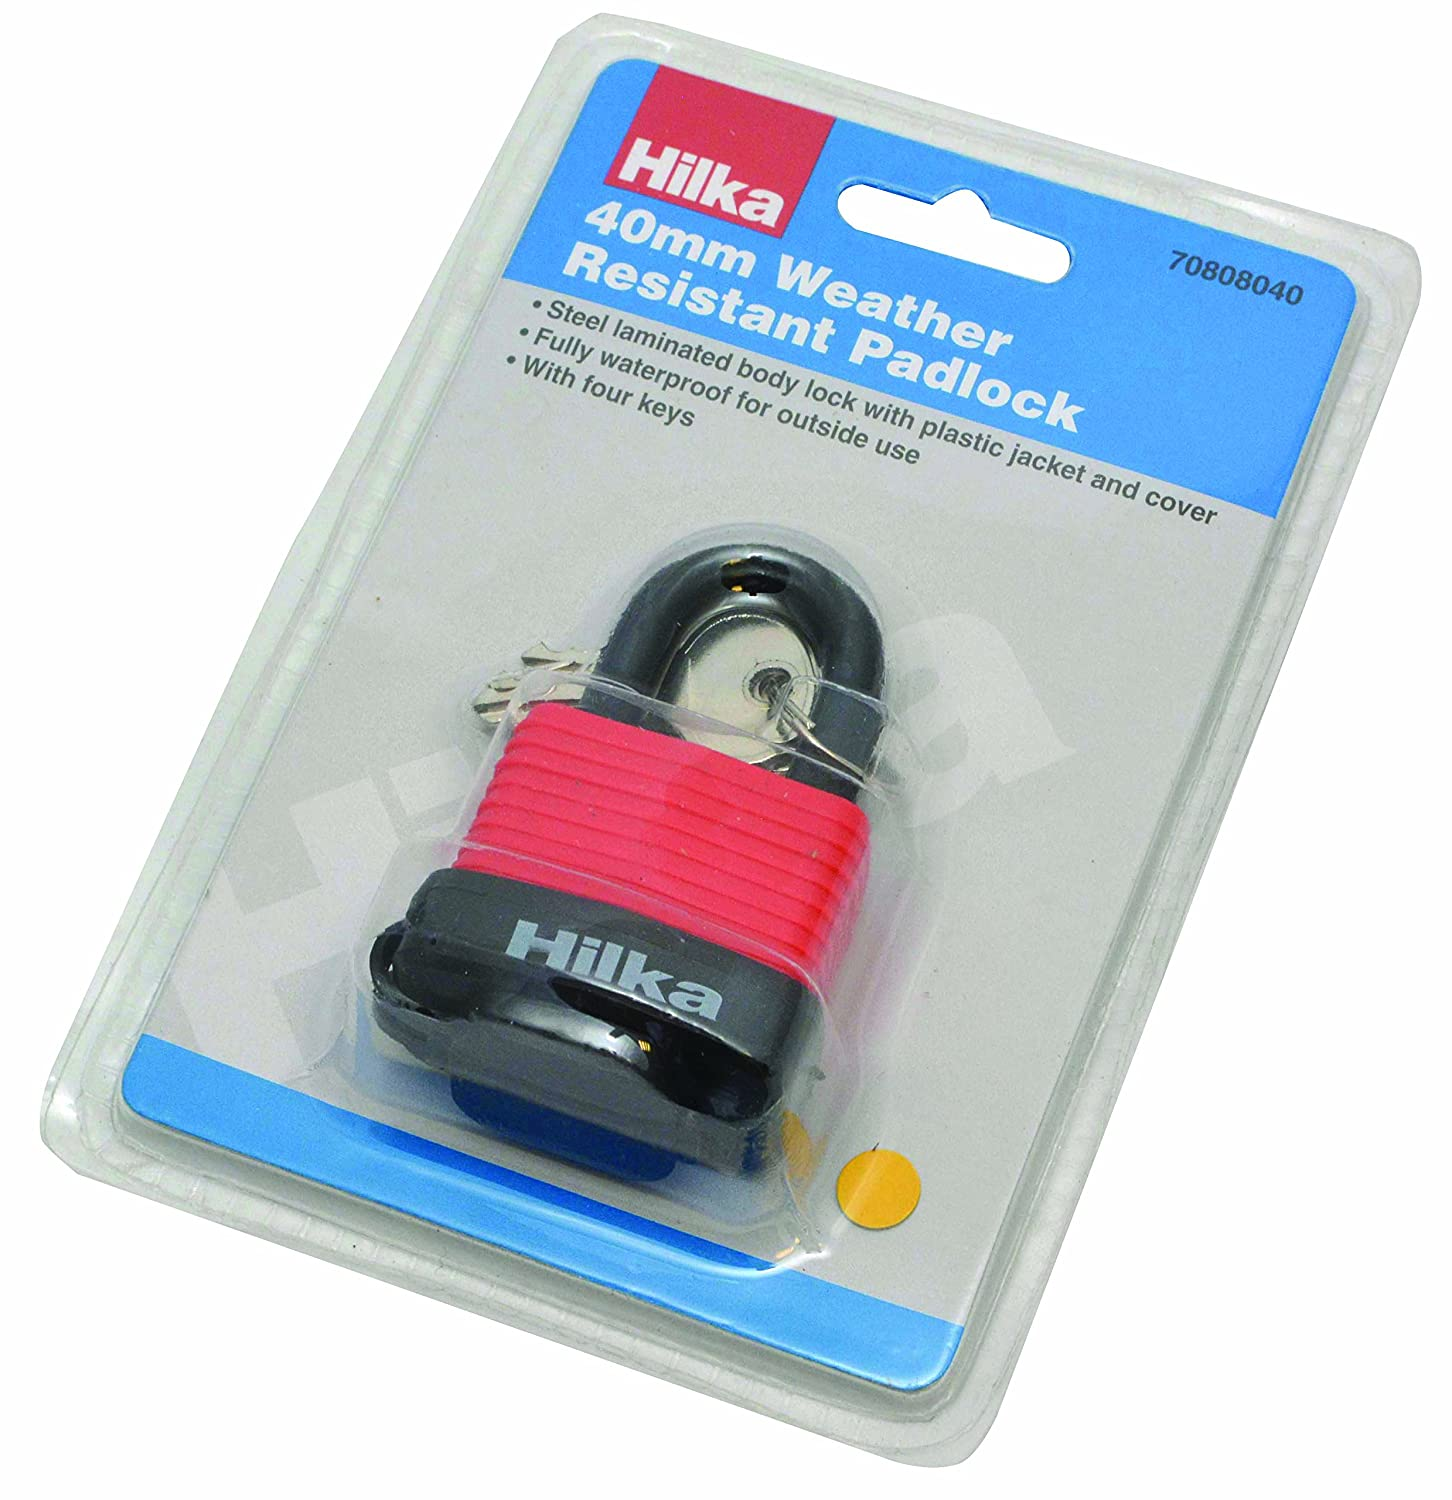 Hilka 70808040 40 mm Weather Resistant Padlock Hilka Tools (UK) Ltd